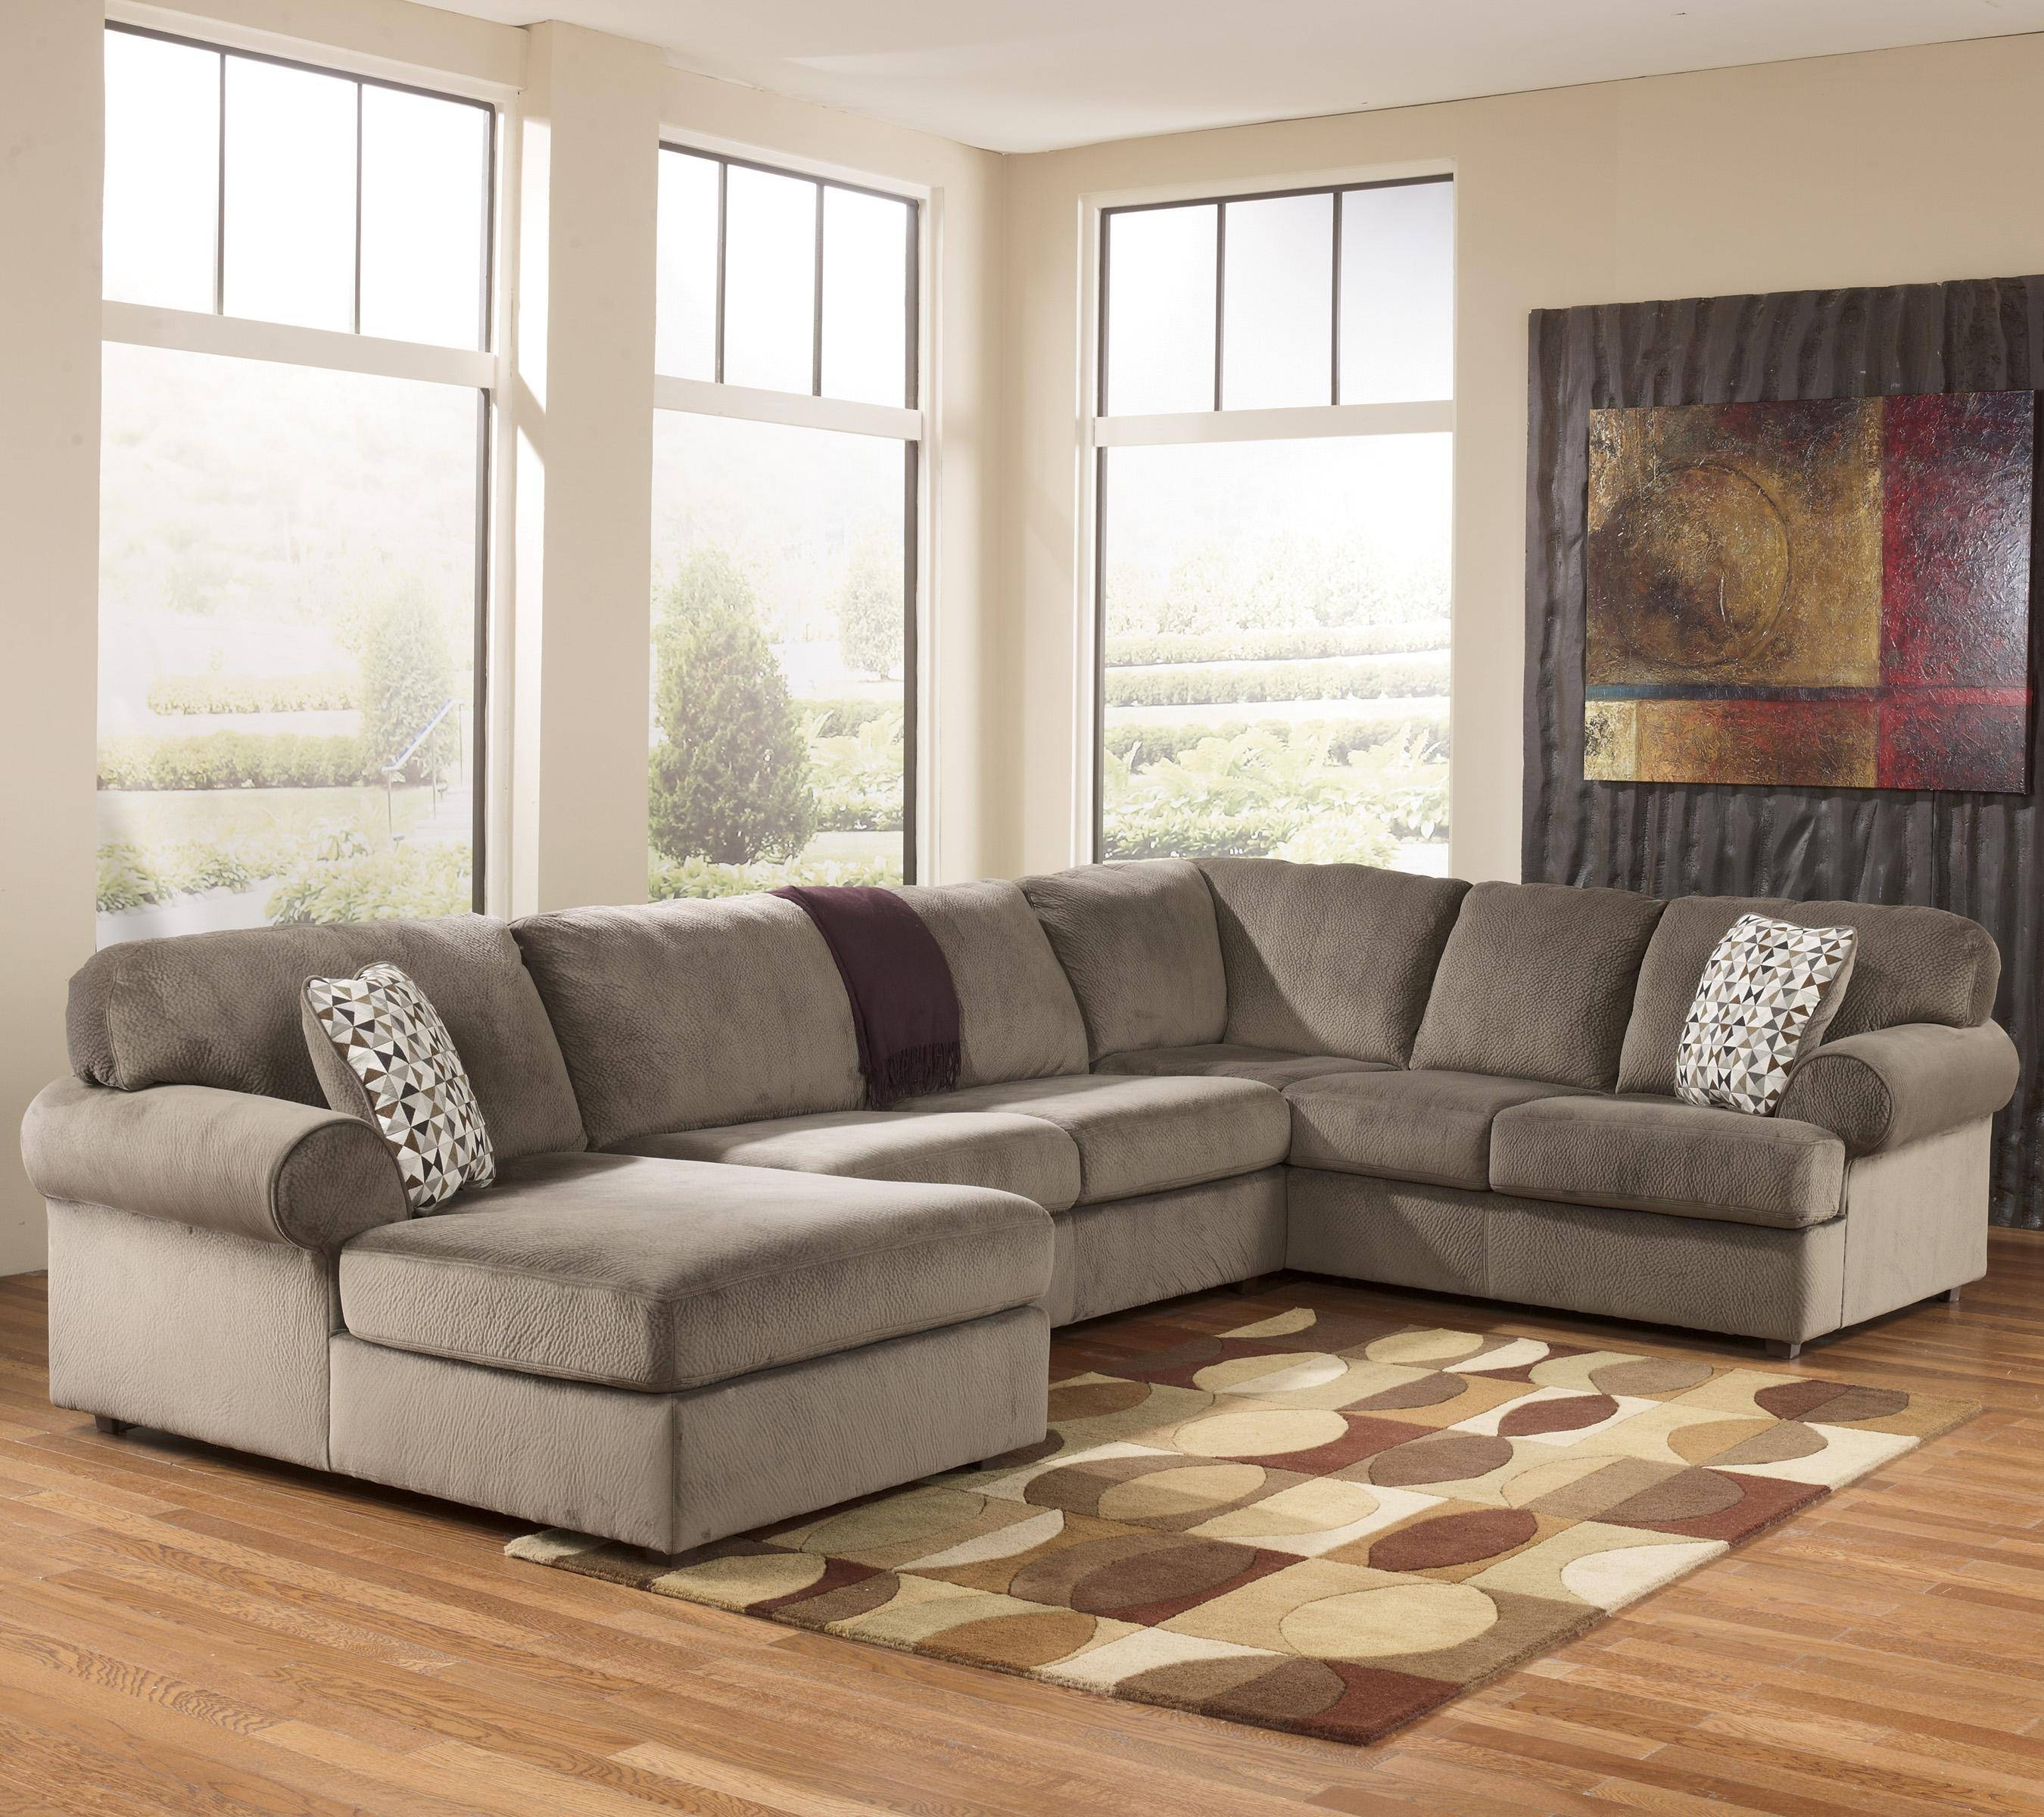 design your sofa sofas furniture leather awesome living spaces finest sectional ethan for allen small room mn